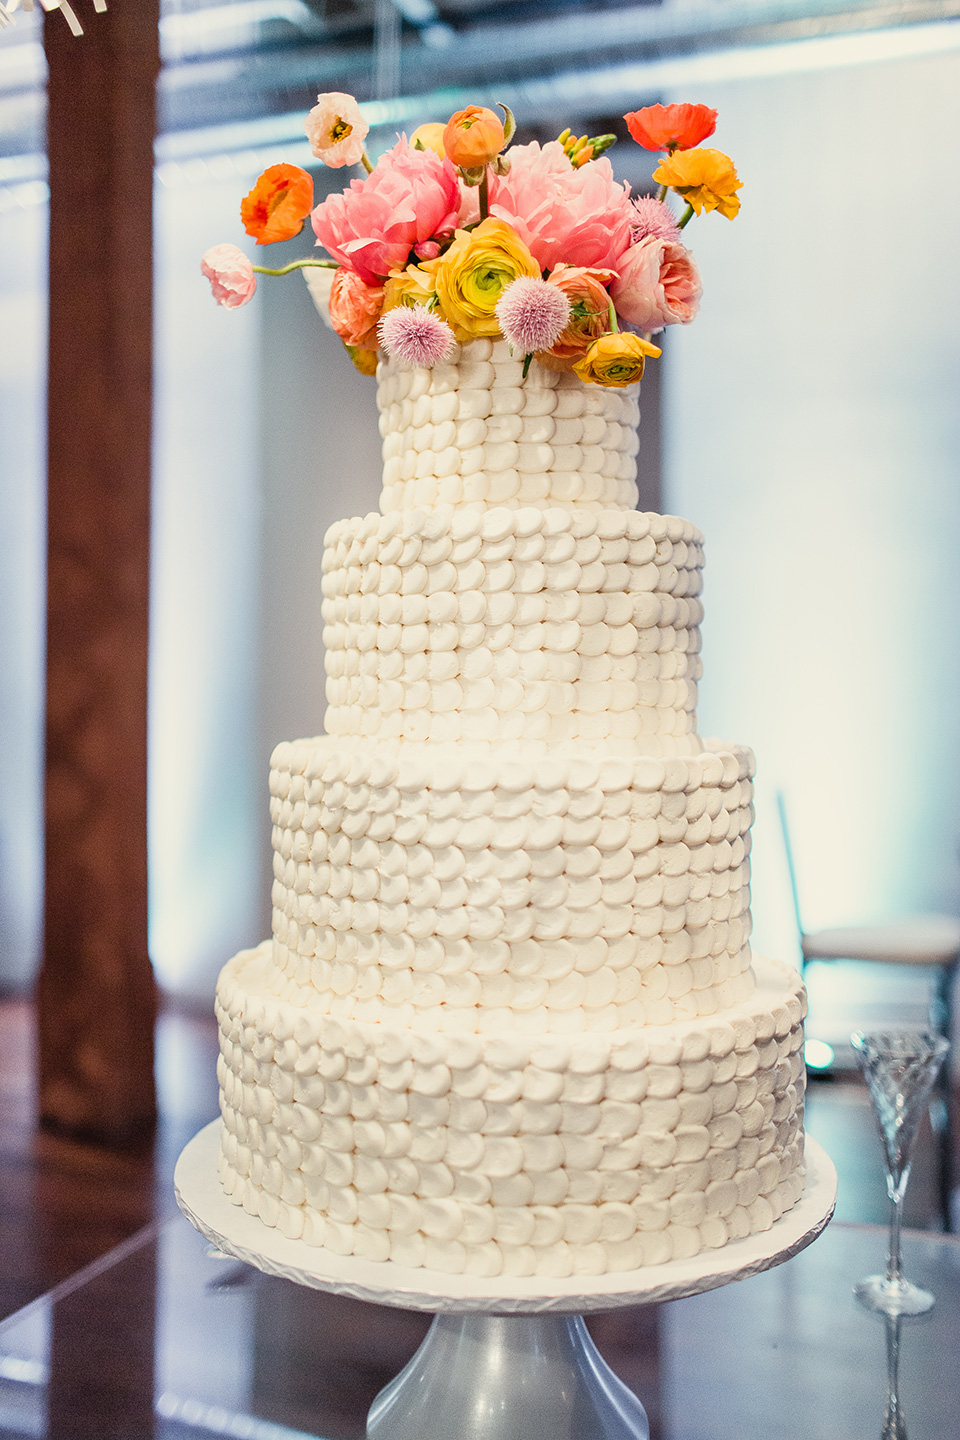 Push_texture_4tier_butter_cream_wedding_cake_classic_Sugarbeesweets.jpg